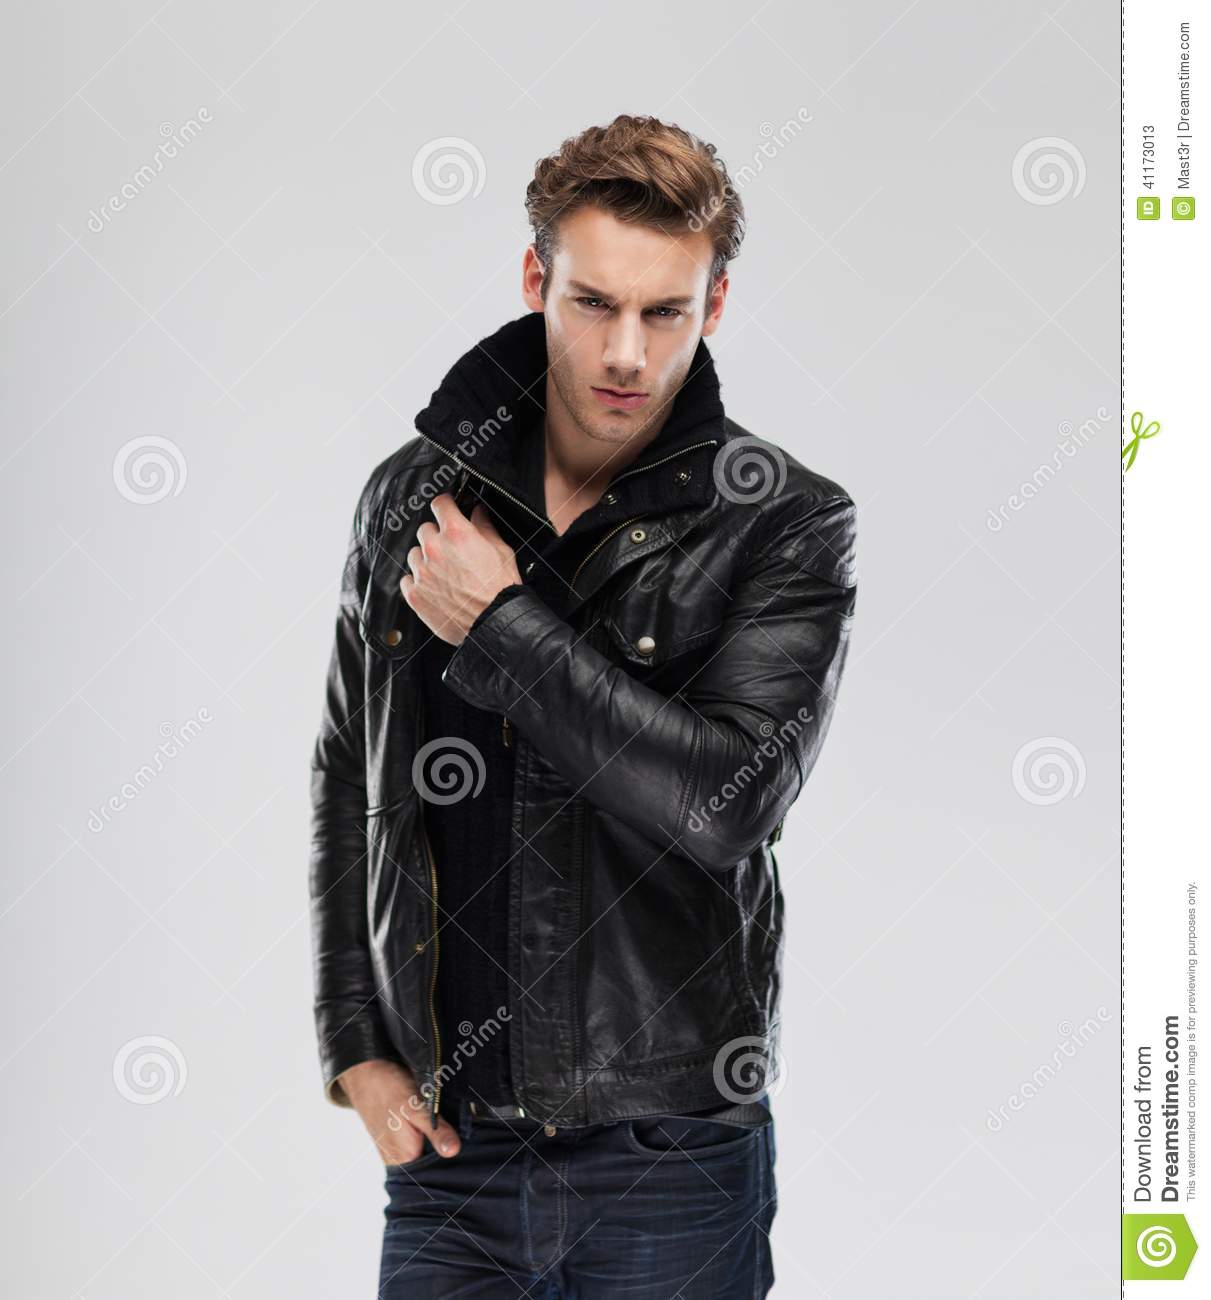 Man with leather jacket